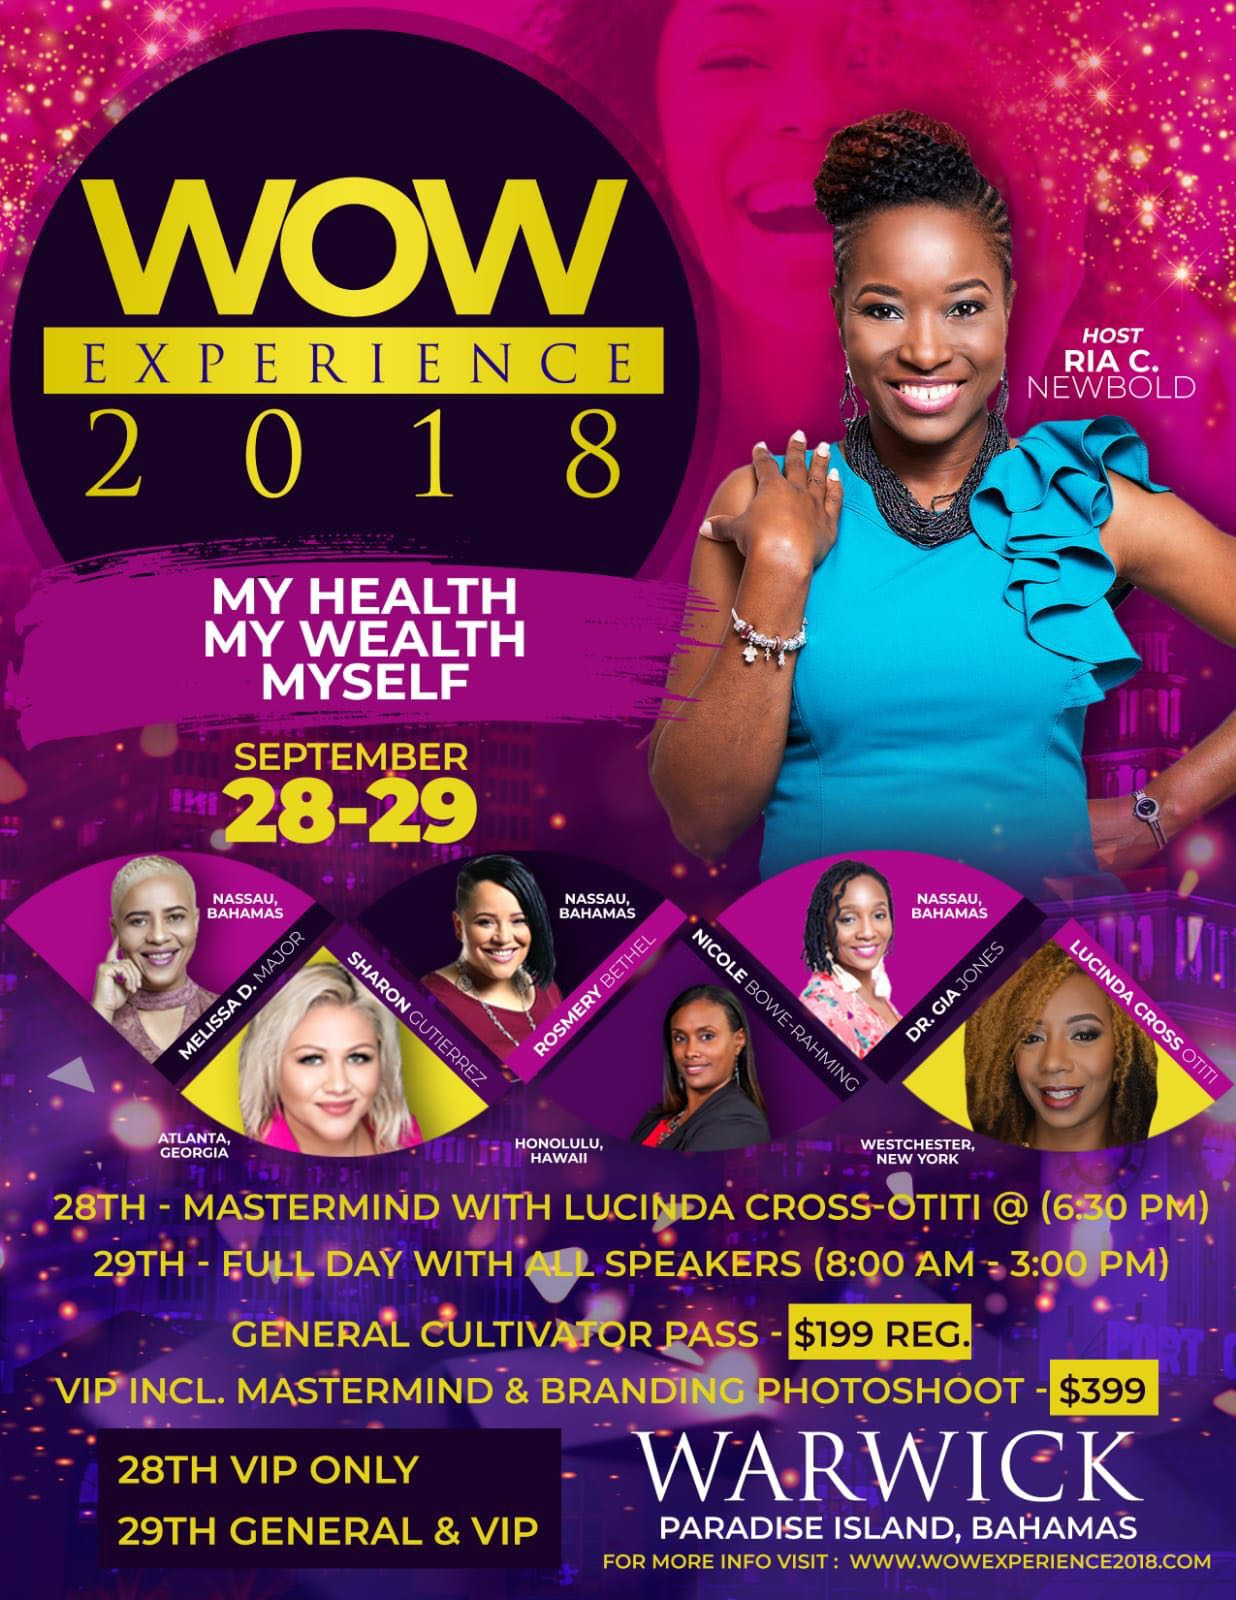 WOW Experience 2018 Hosted by Ria C. Newbold